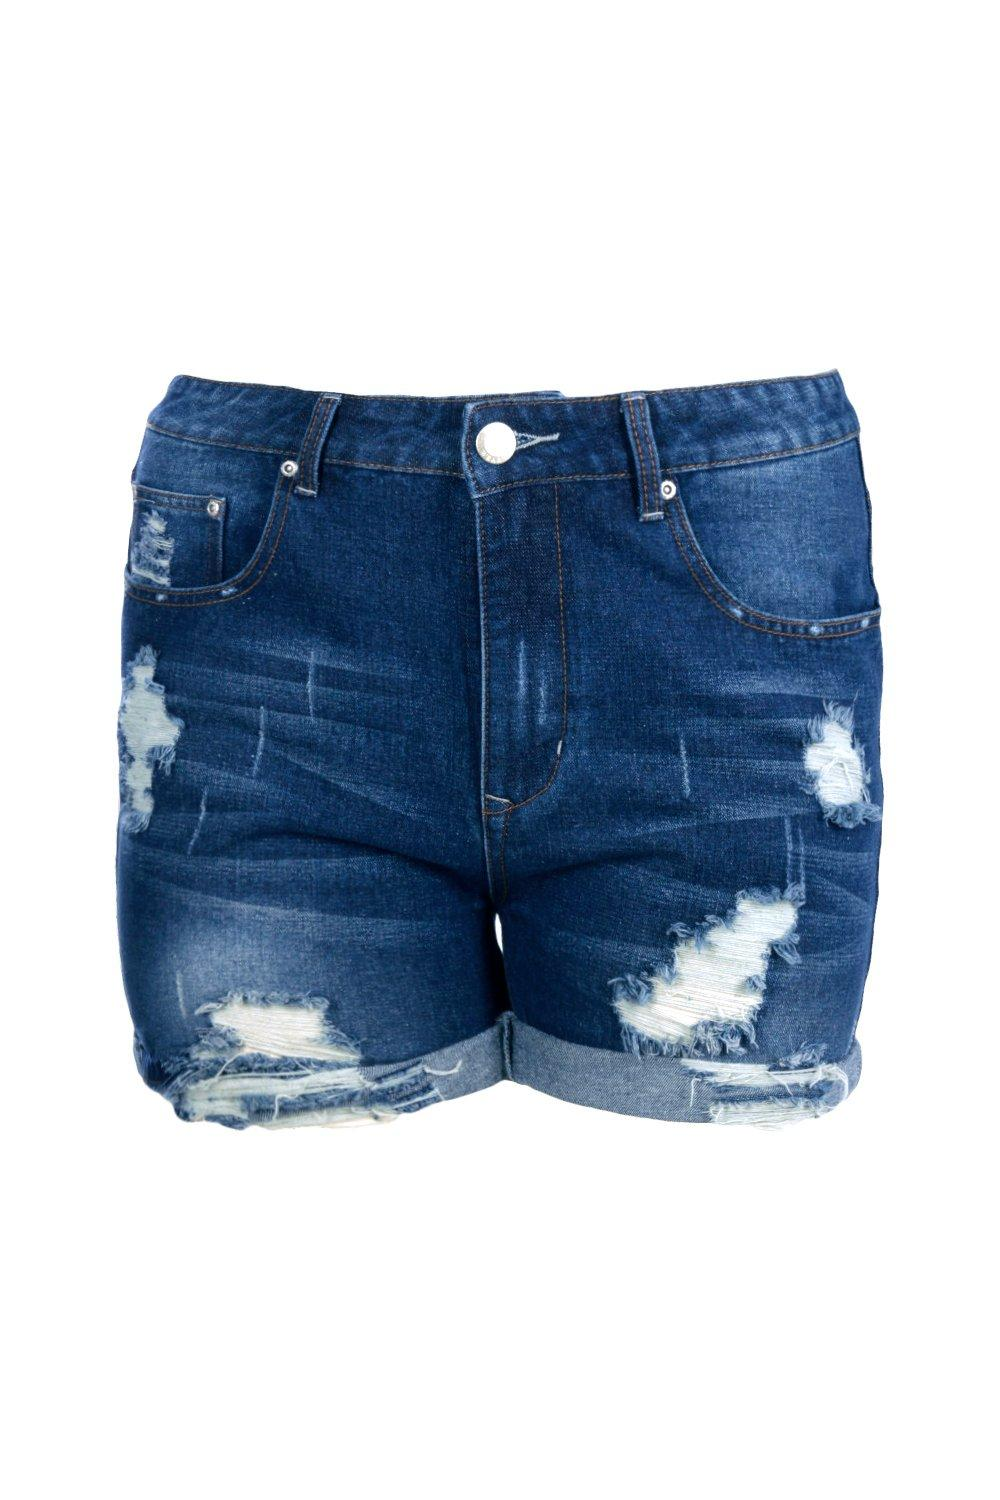 Up Short blue Turn Plus Denim a4xF7wqBC